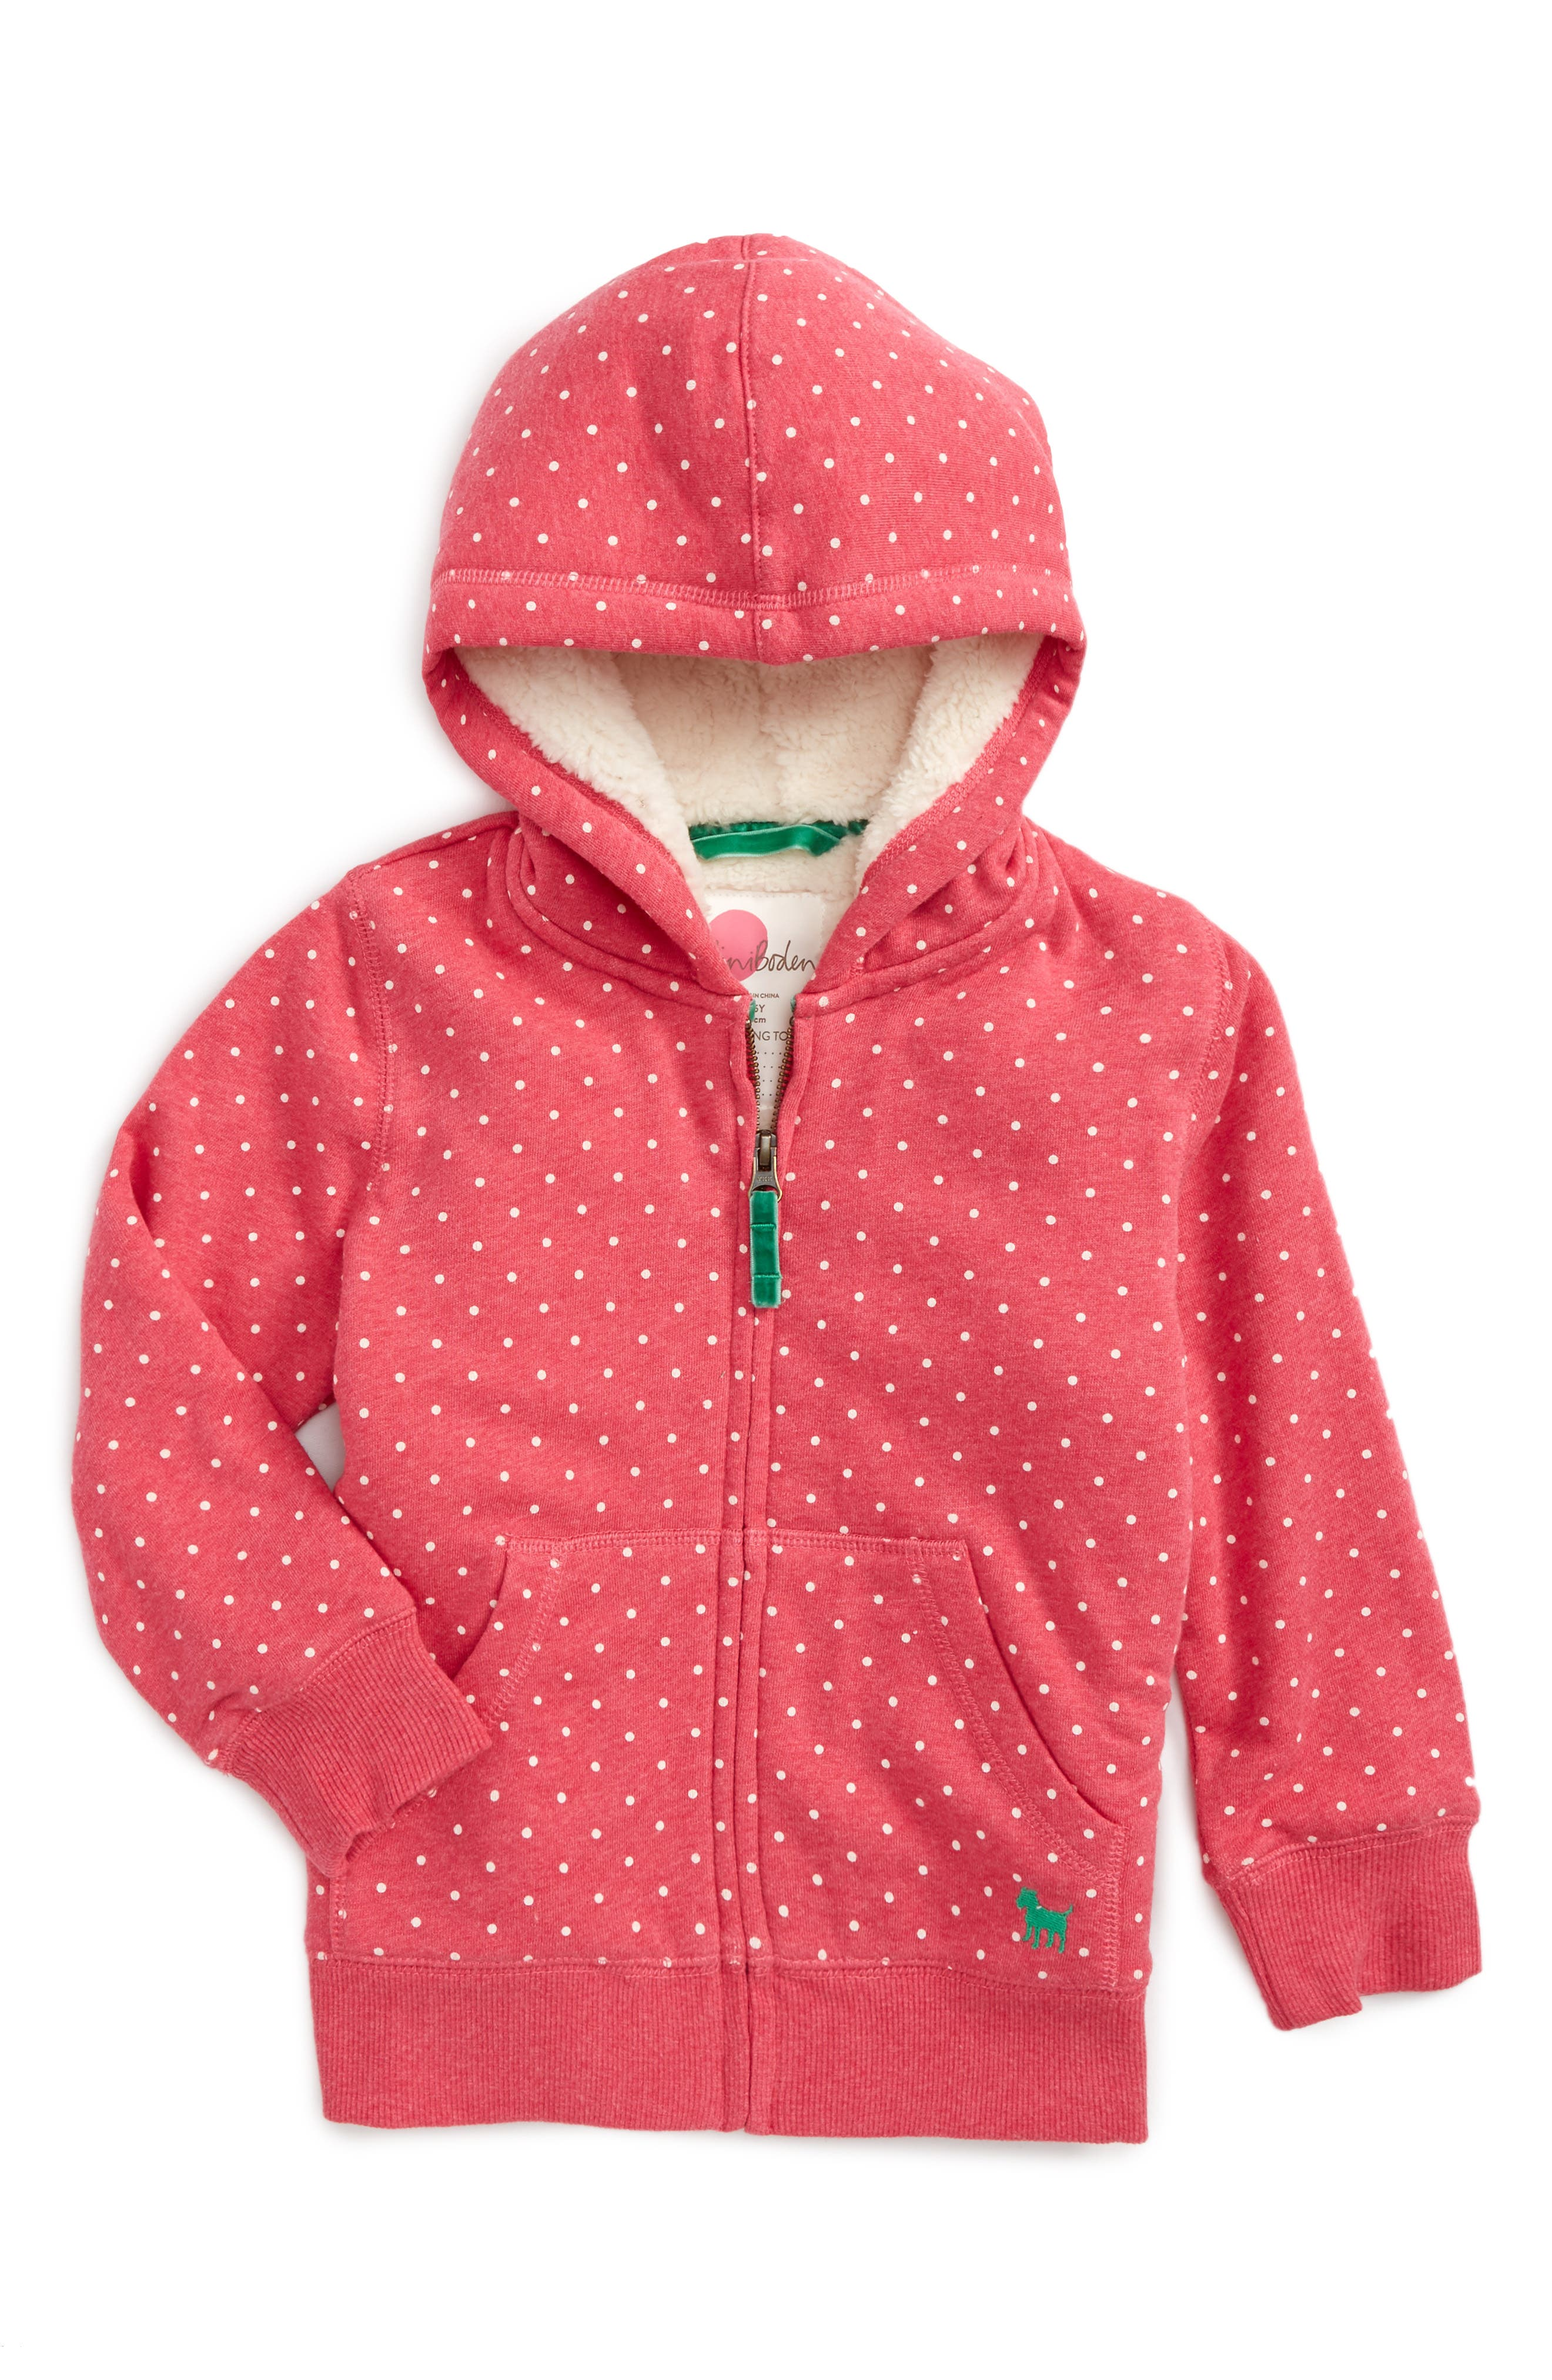 Boden Print Shaggy Lined Hoodie,                             Main thumbnail 5, color,